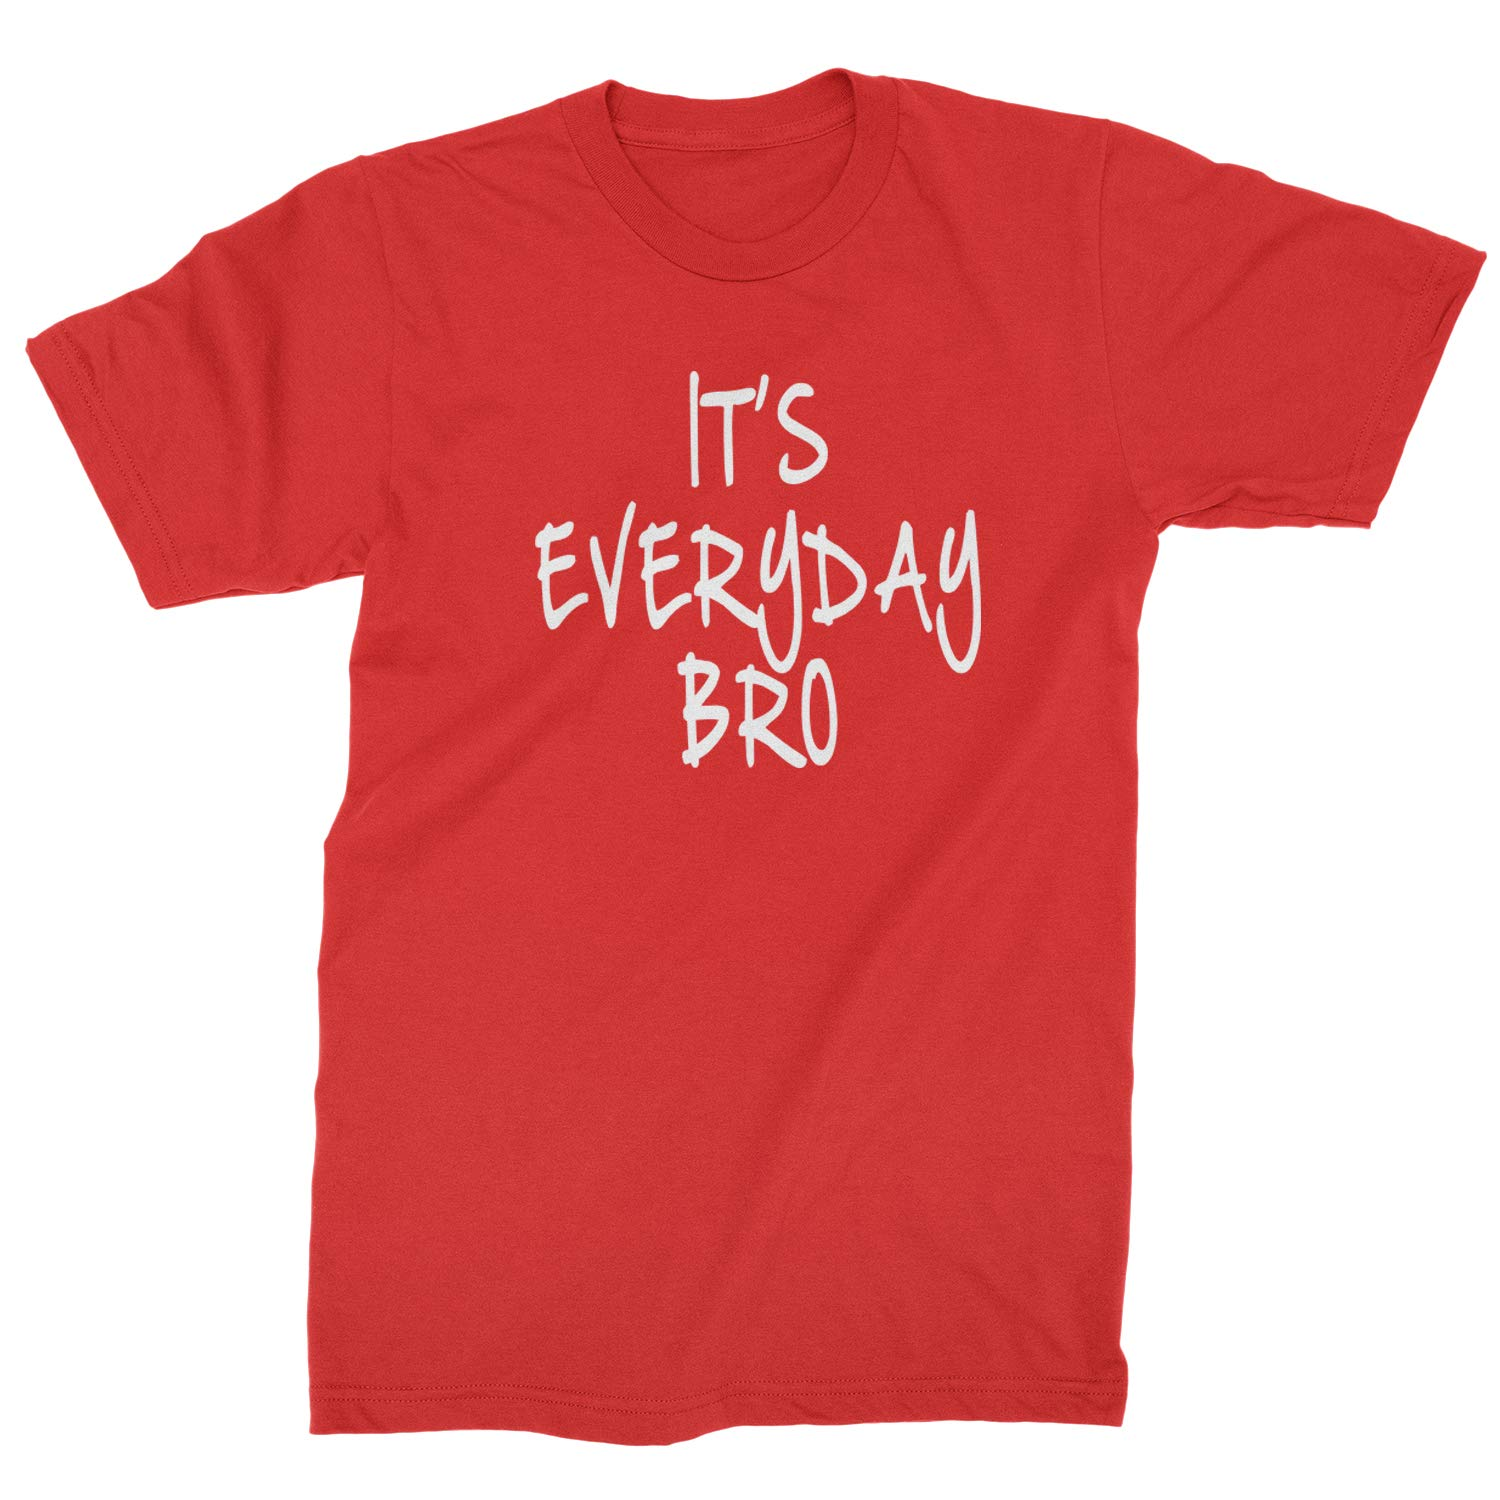 Expression Tees Its Everyday Bro Mens T-Shirt